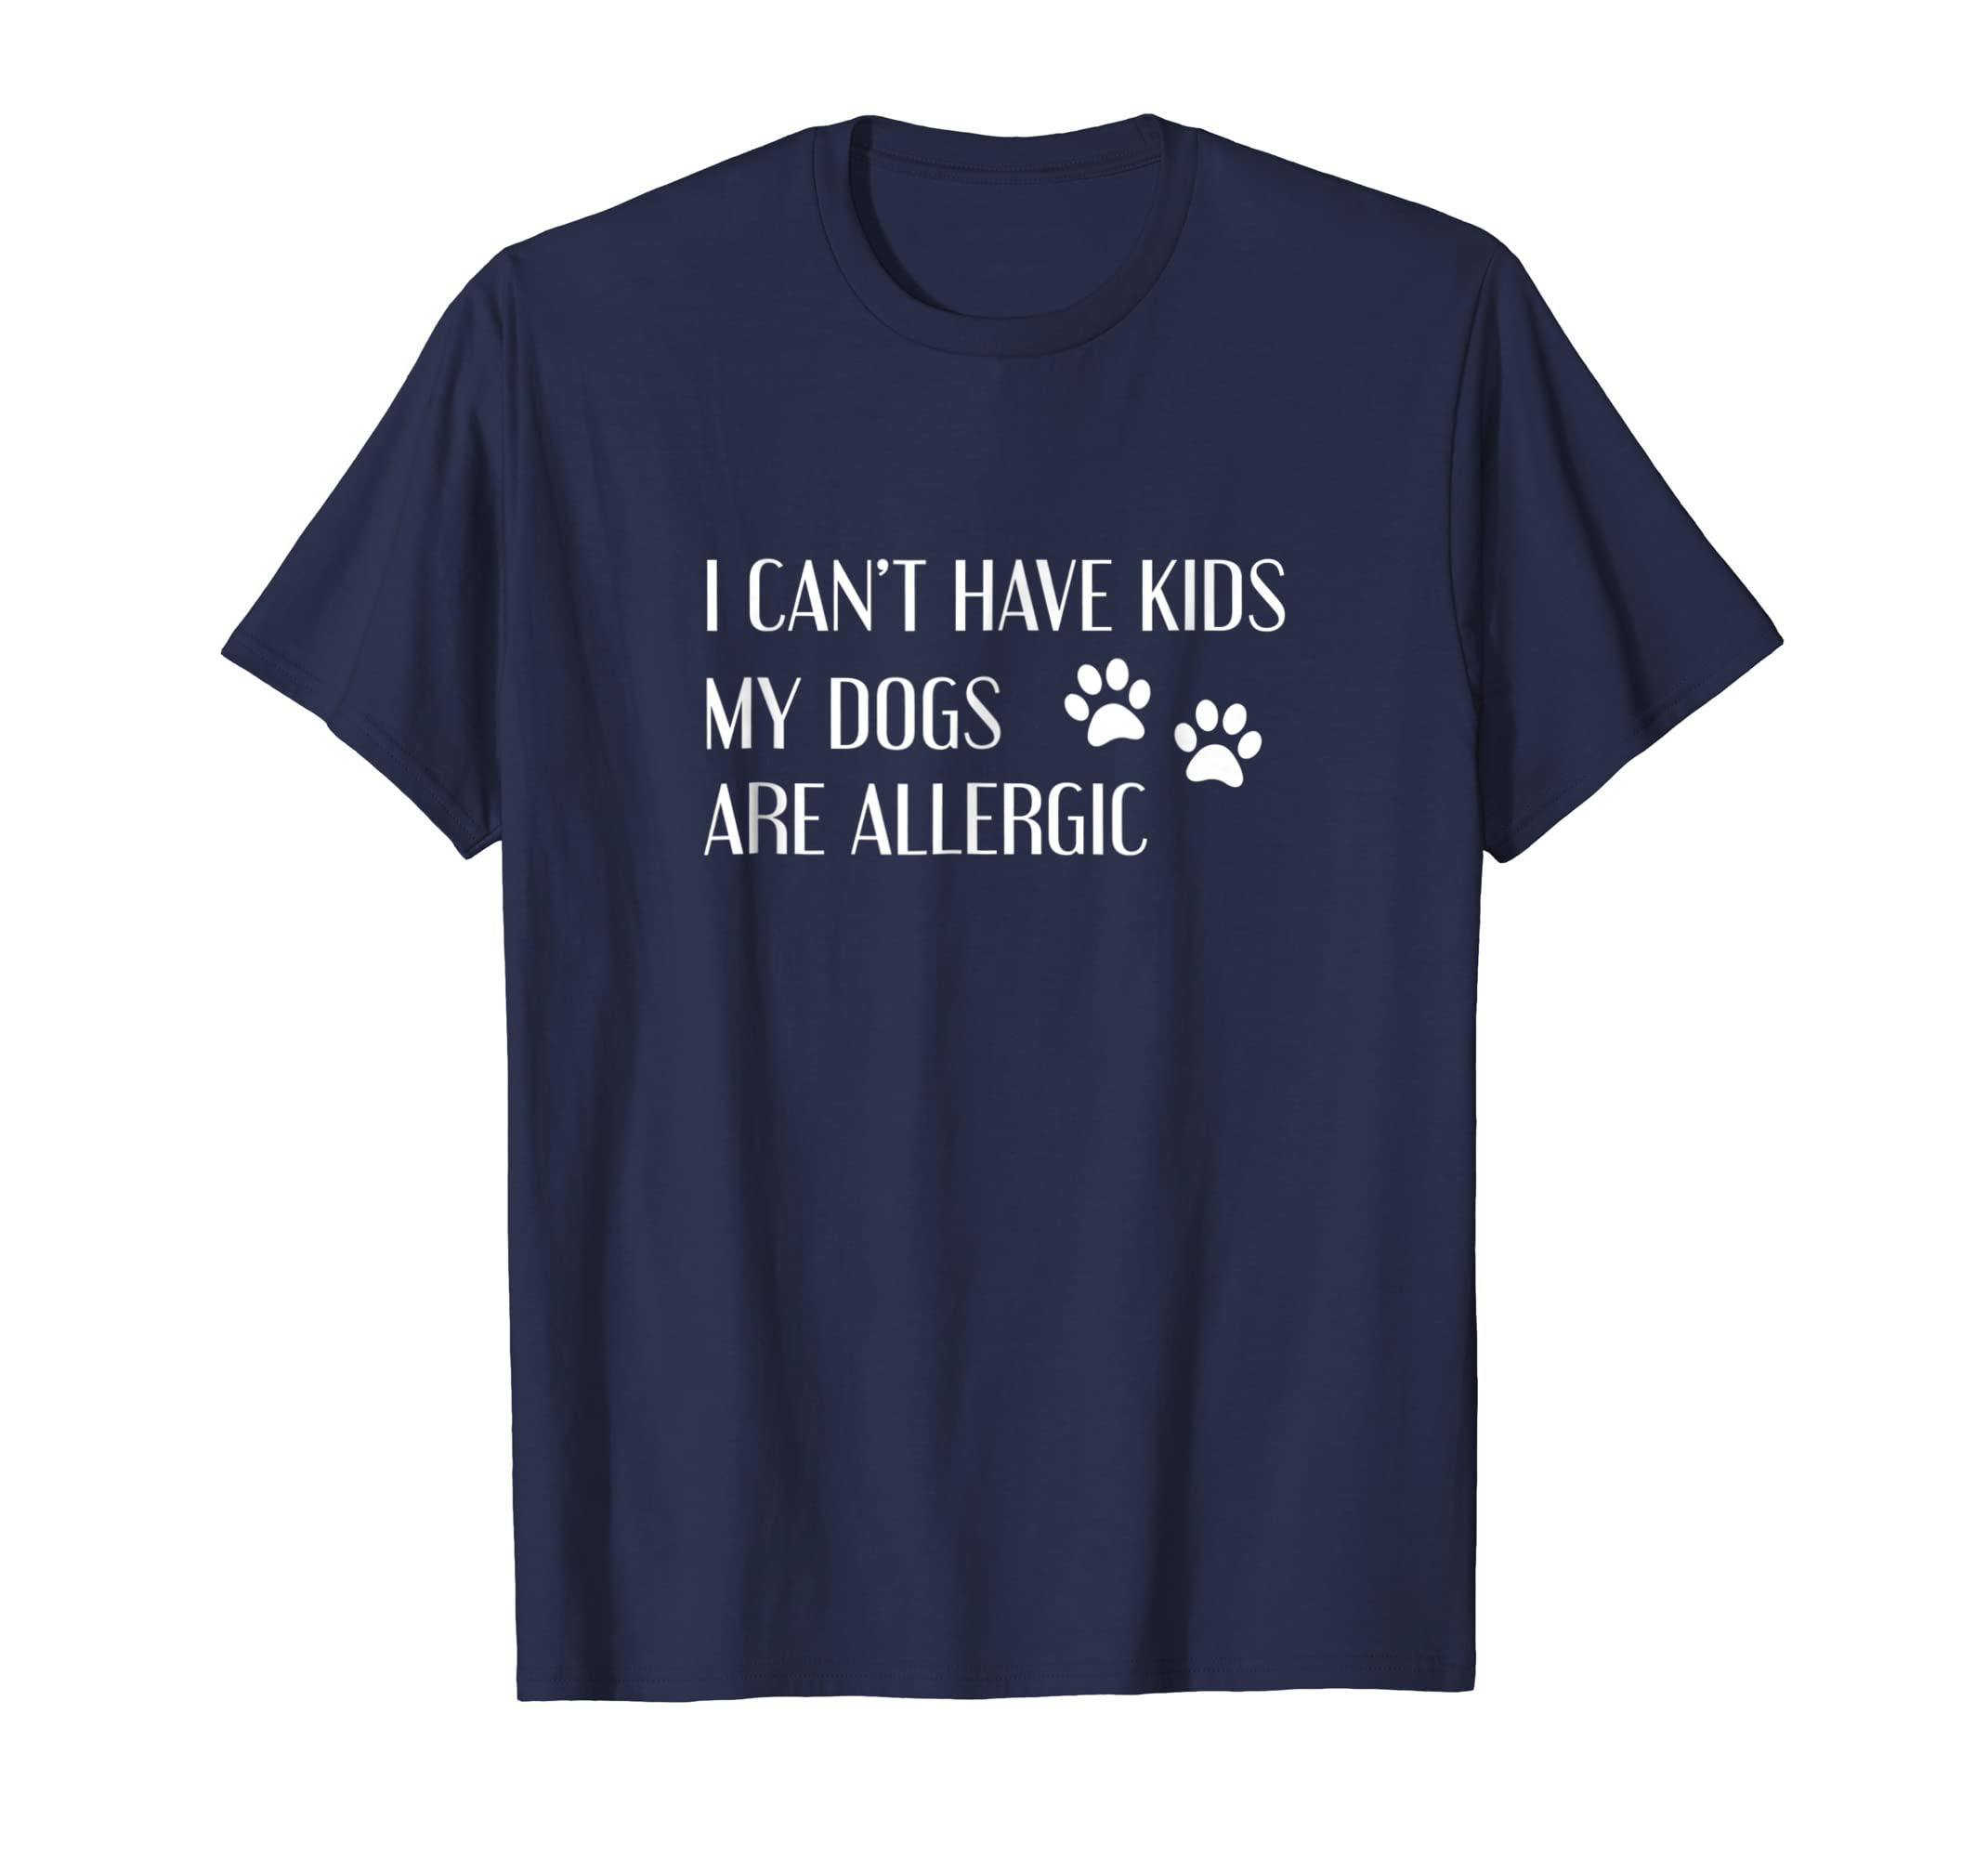 I can't have kids my dogs are allergic-AZP